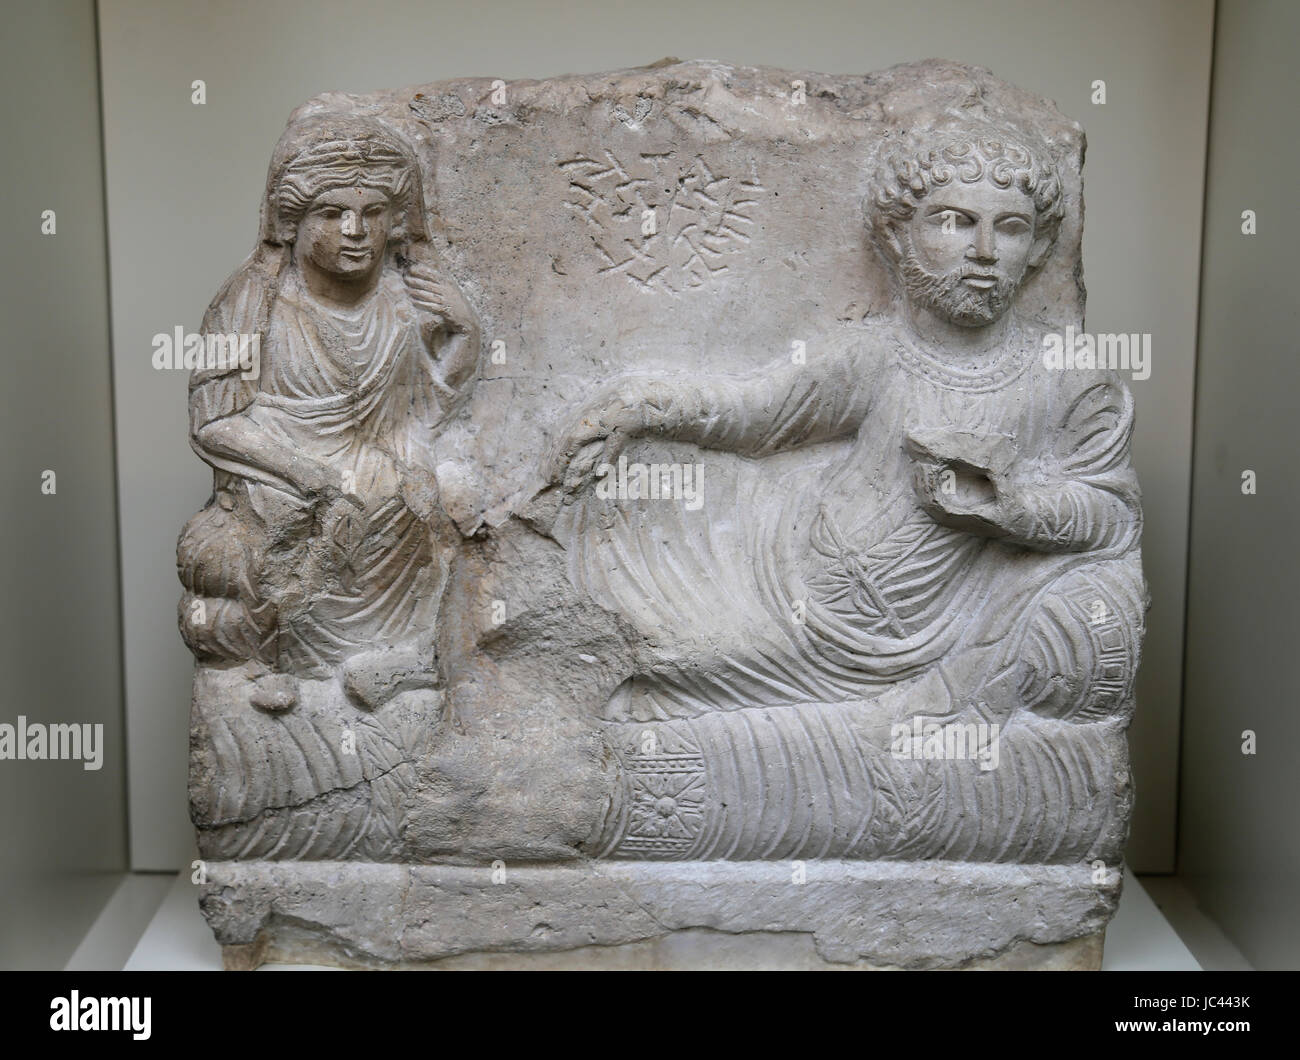 Palmyra. Limestone relief. Funerary relief. c. 200-273 CE. Syria. British Museum. London, UK. Stock Photo